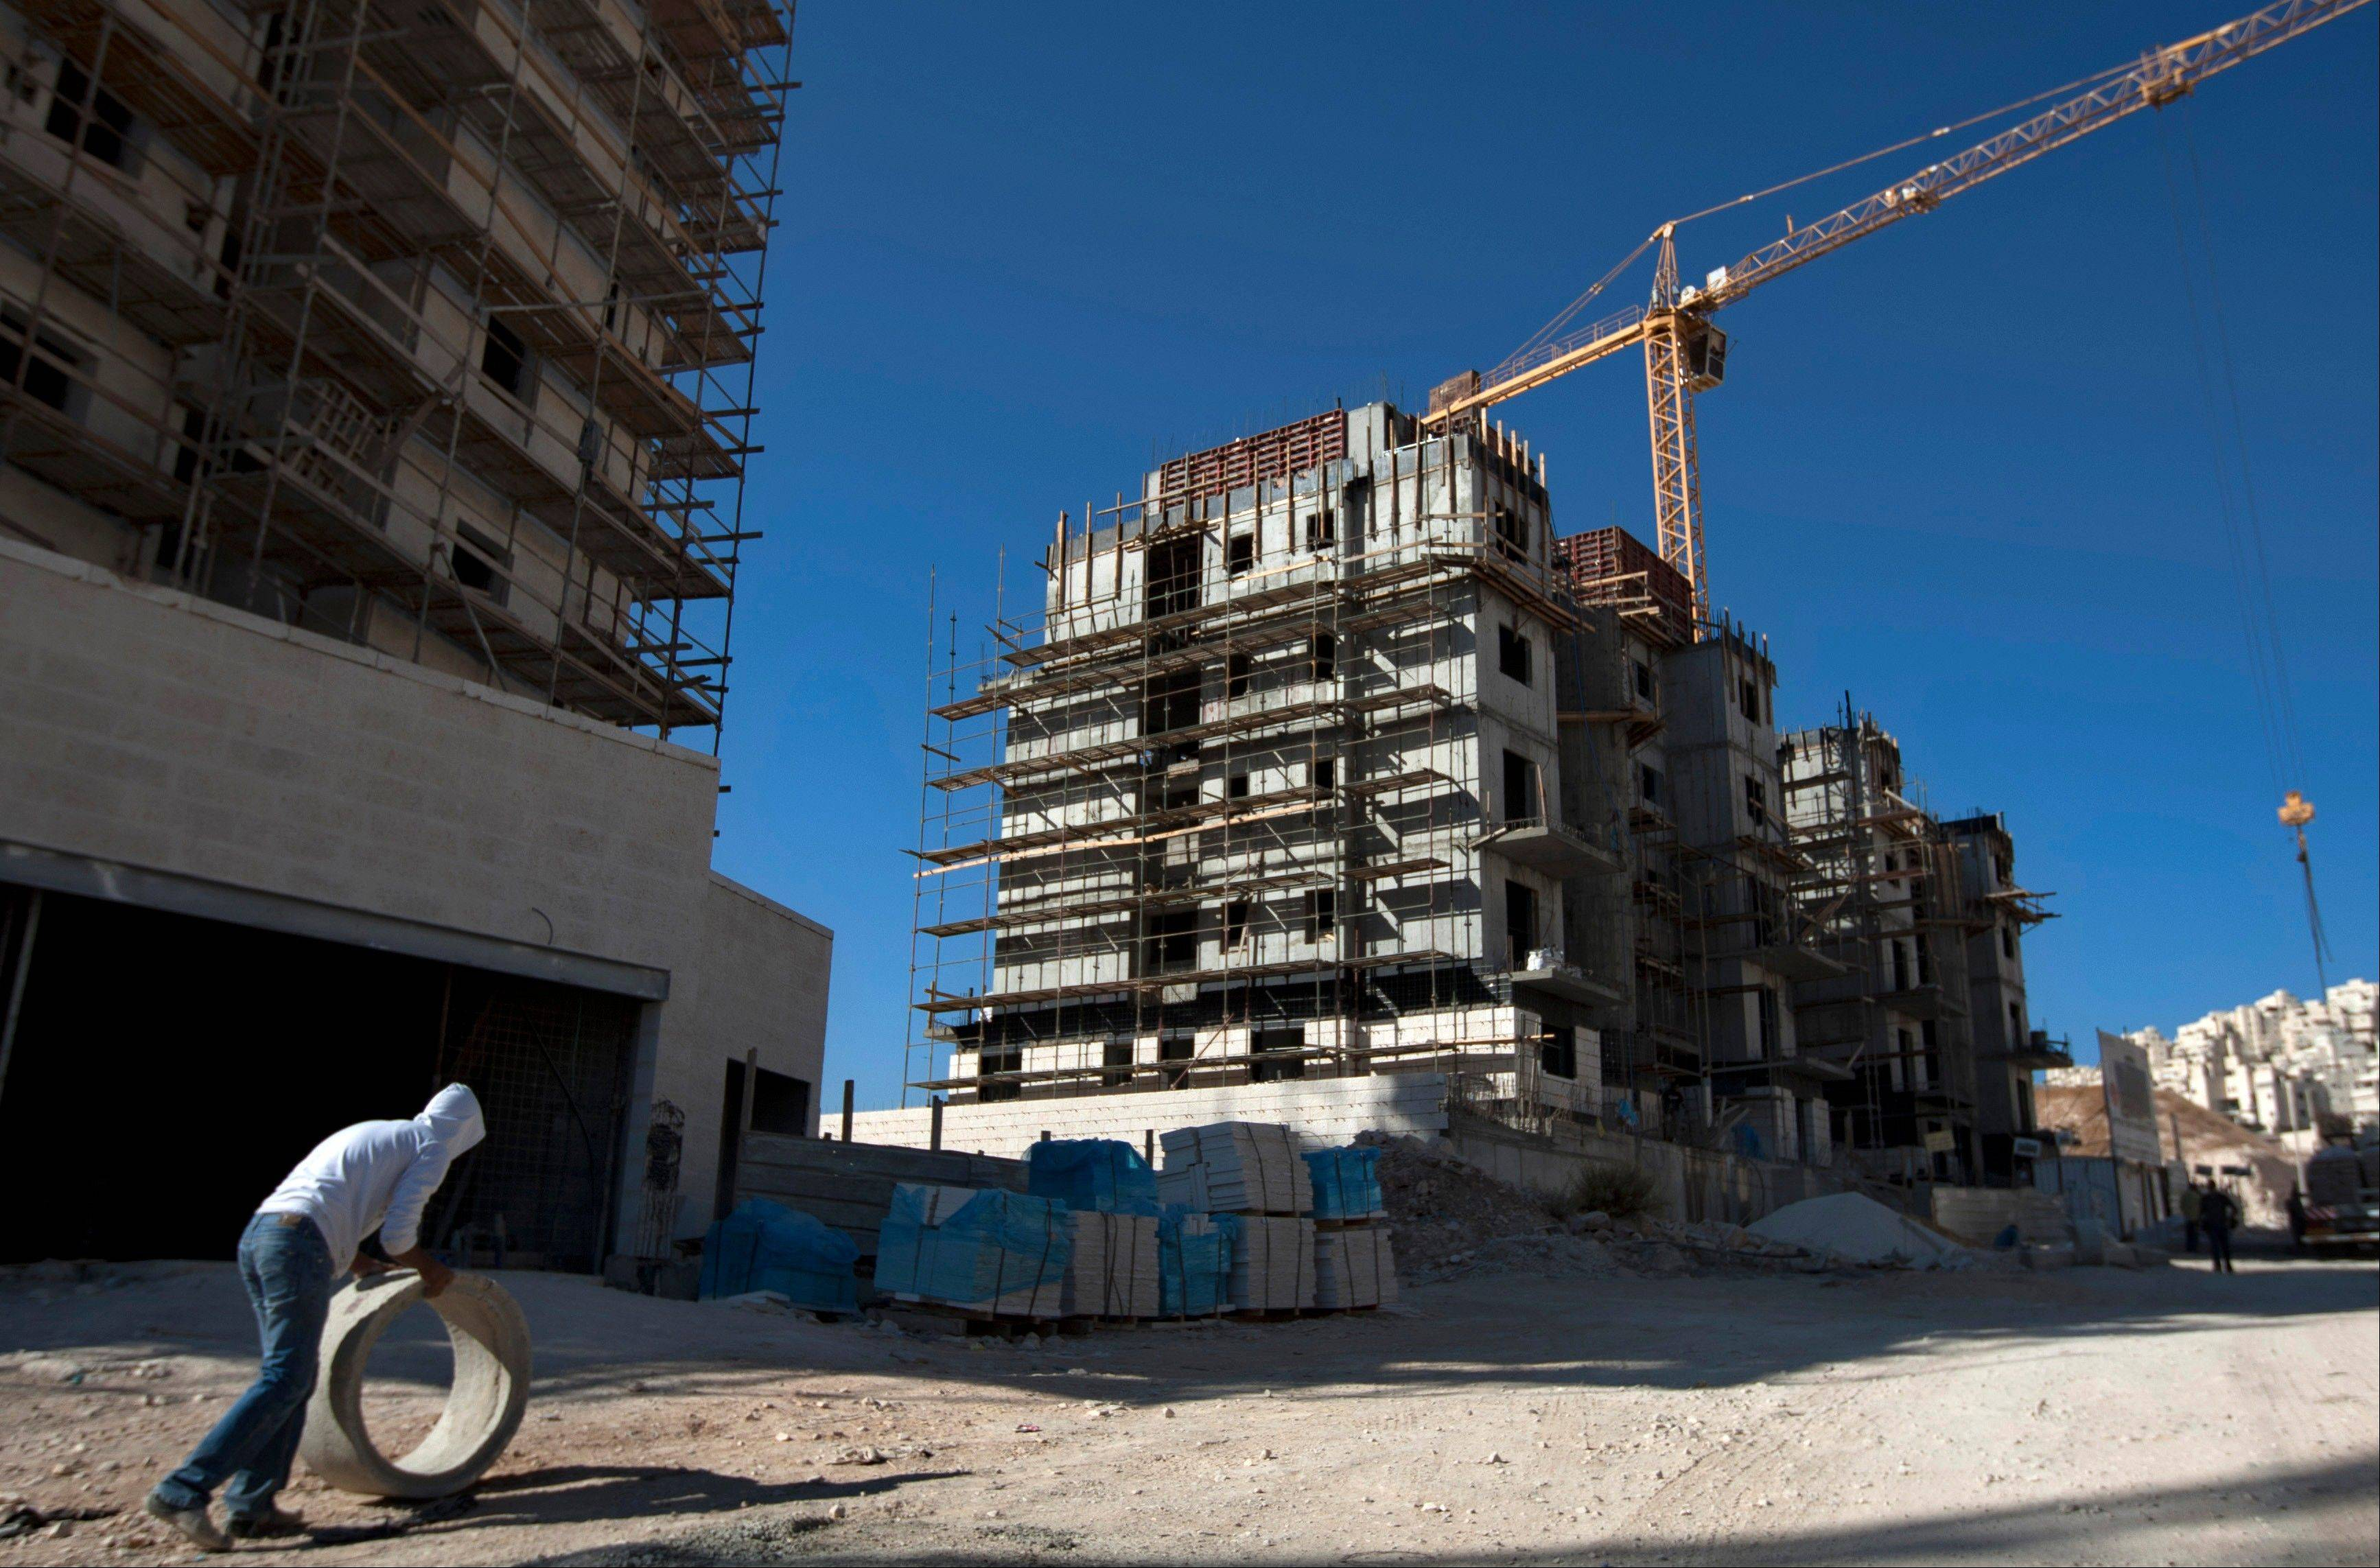 Associated Press/Nov. 2, 2011 A construction worker works at a site of a new housing unit in the east Jerusalem neighborhood of Har Homa.